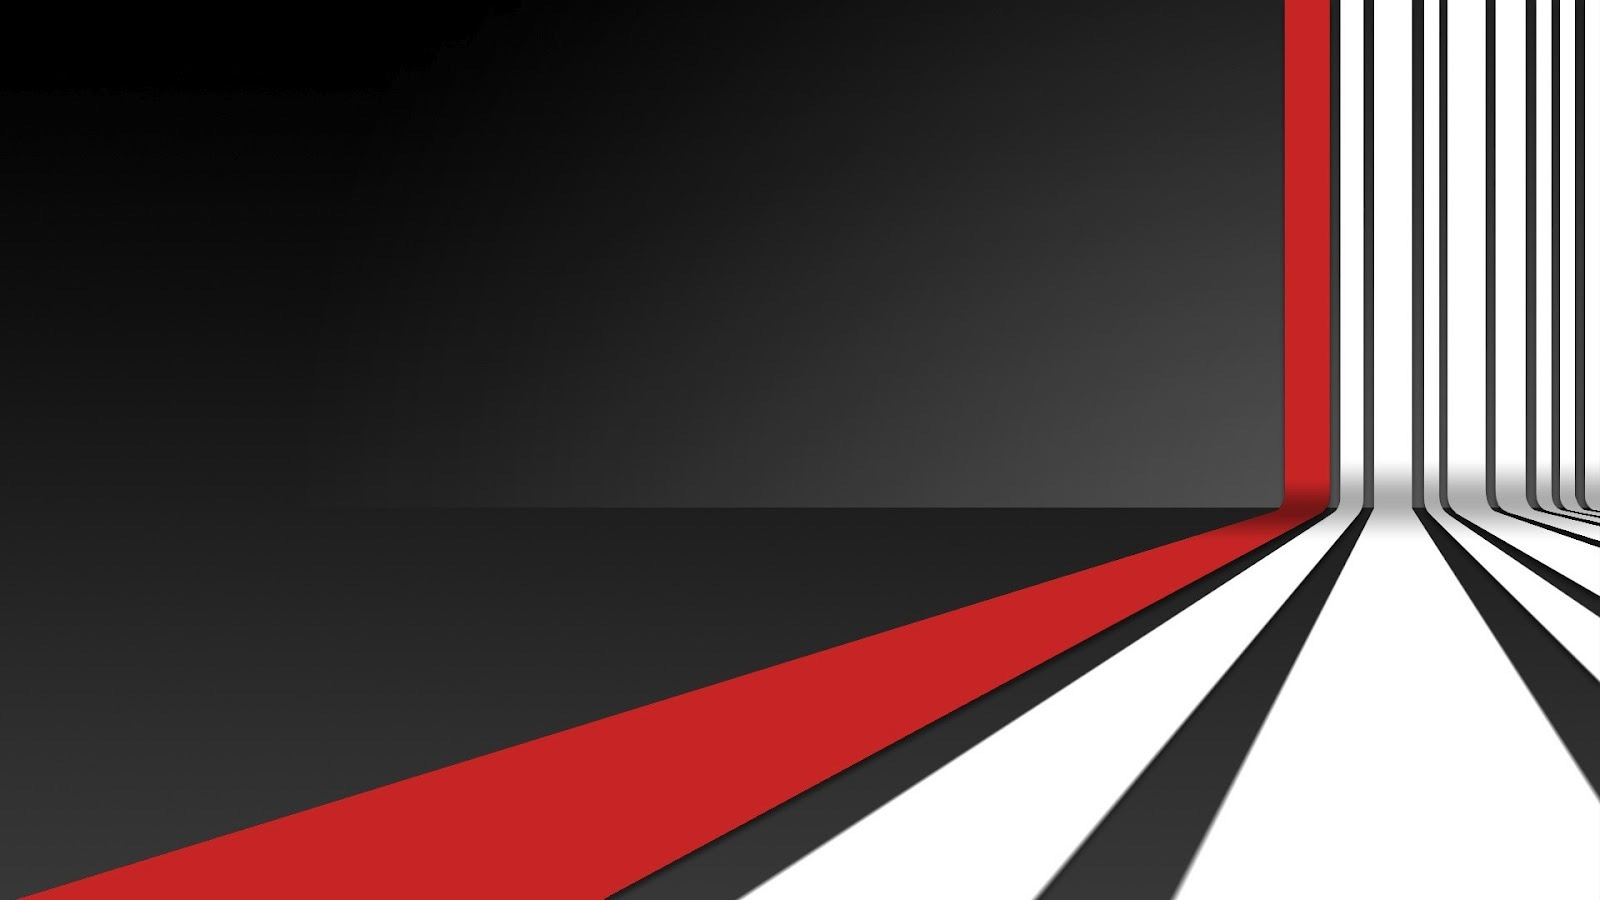 Black and red hd wallpapers white line backgroundsjpg 1600x900